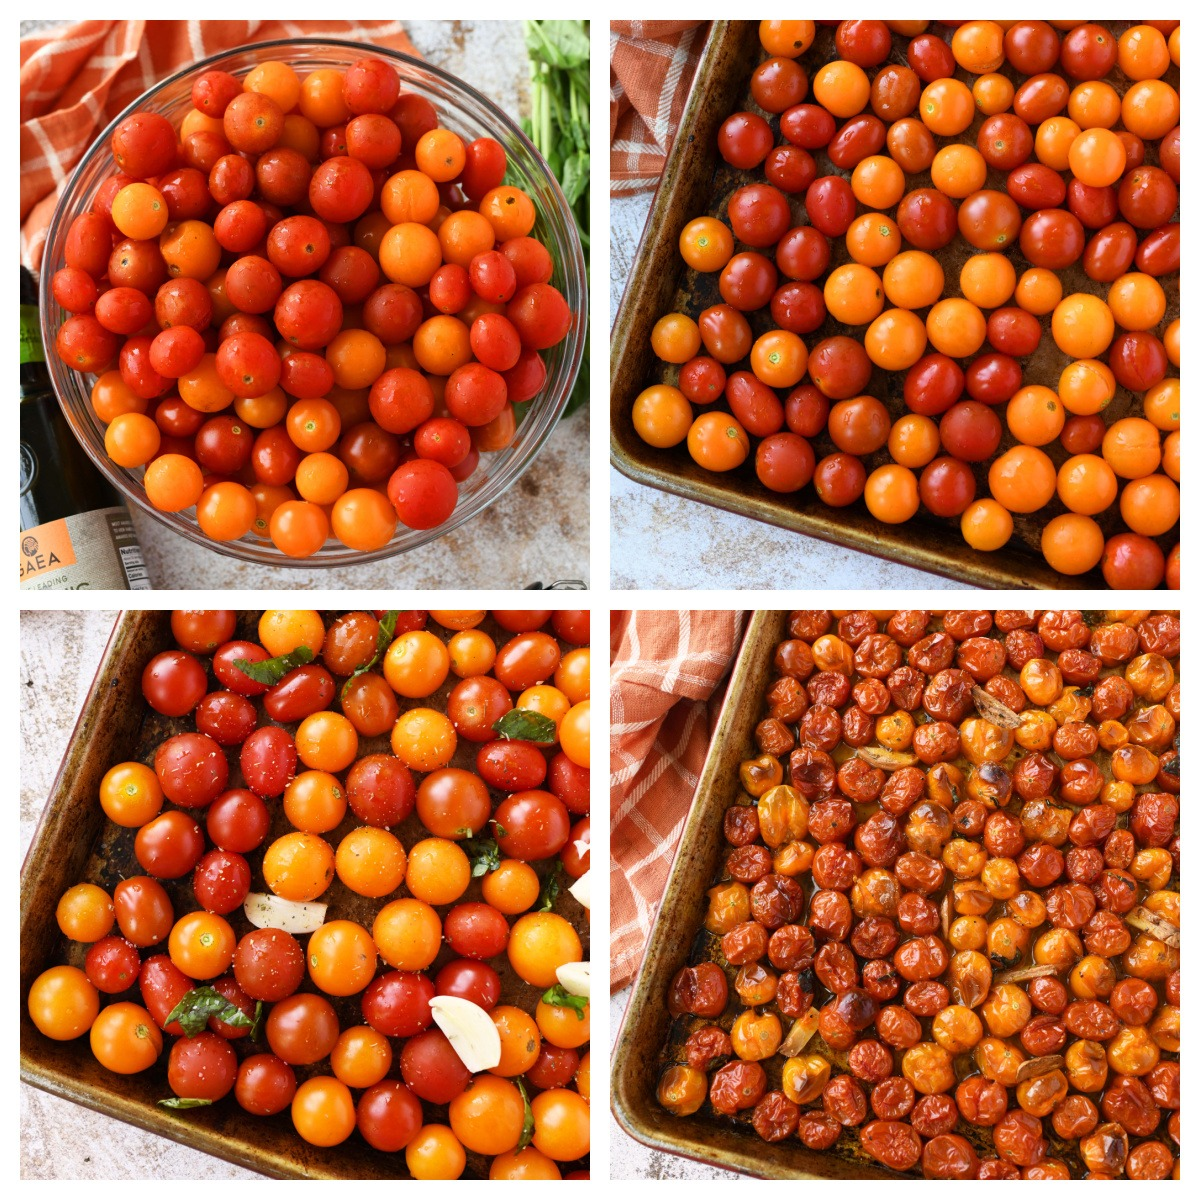 A collage showing how to oven roast tomatoes.